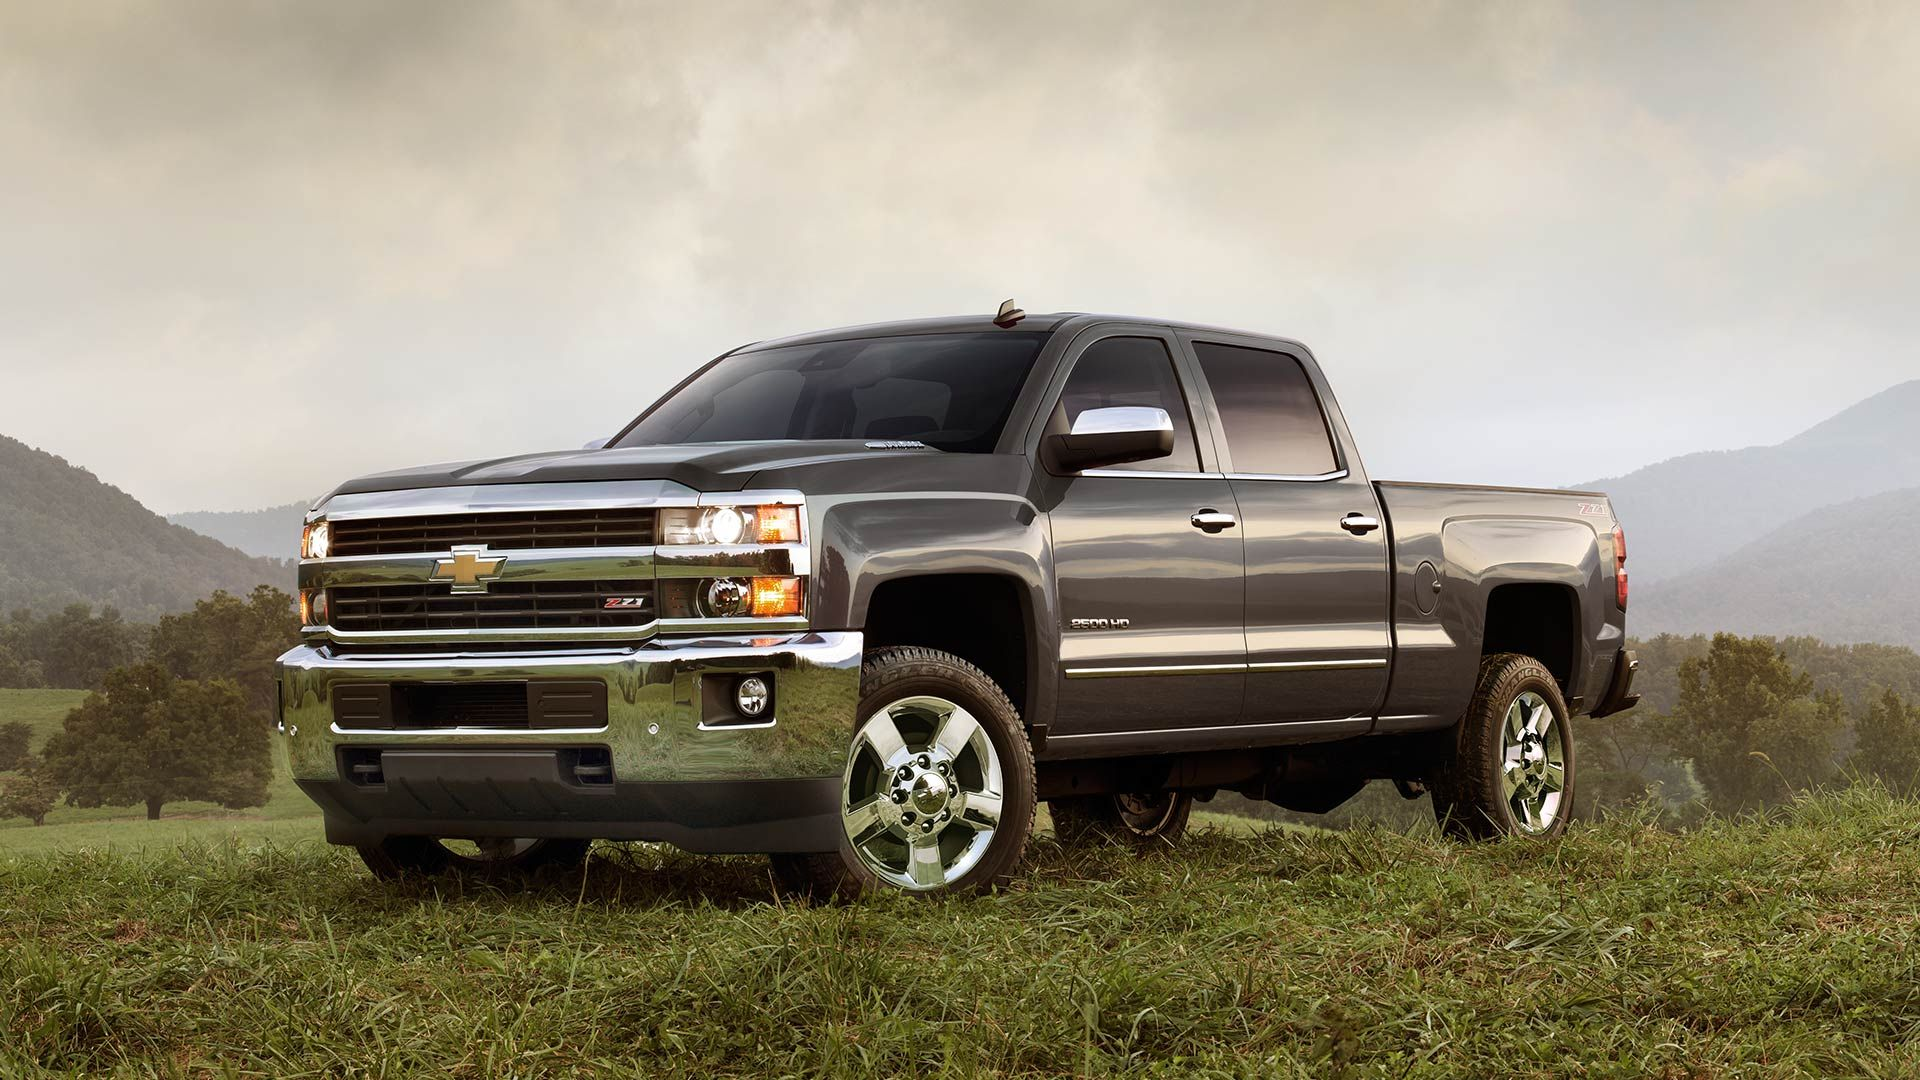 The 25 best silverado for sale ideas on pinterest silverado 1500 for sale duramax for sale and used duramax for sale